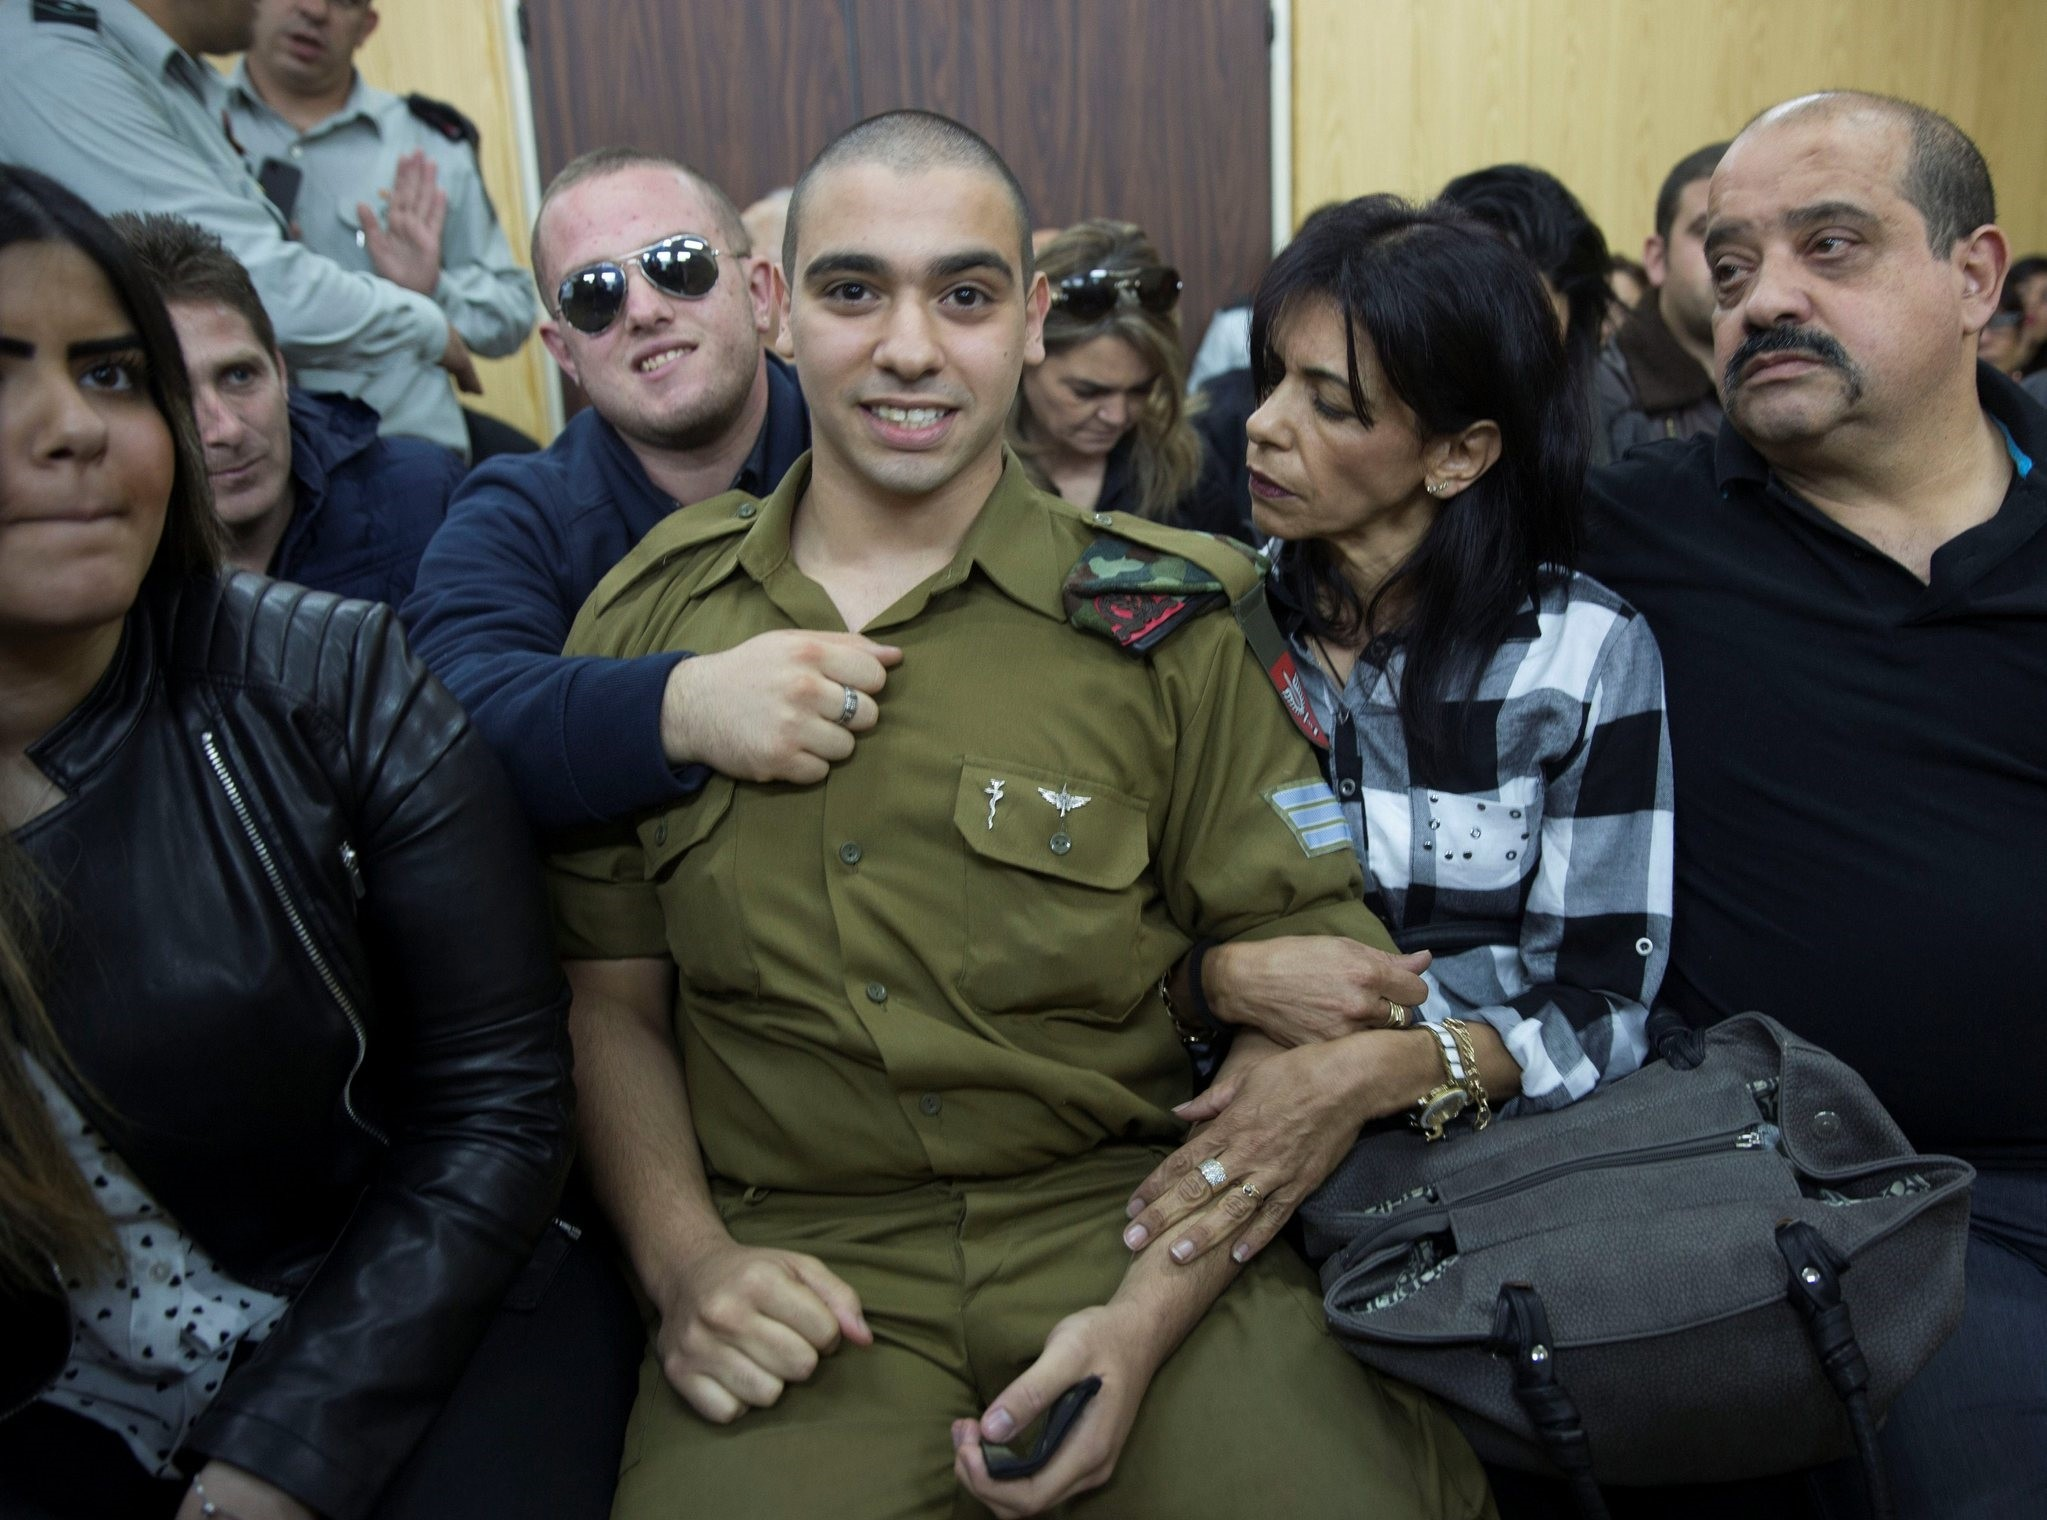 Israeli soldier Elor Azaria, who is charged with manslaughter by the Israeli military, sits to hear his verdict in a military court in Tel Aviv, Israel, January 4, 2017. (REUTERS Photo)